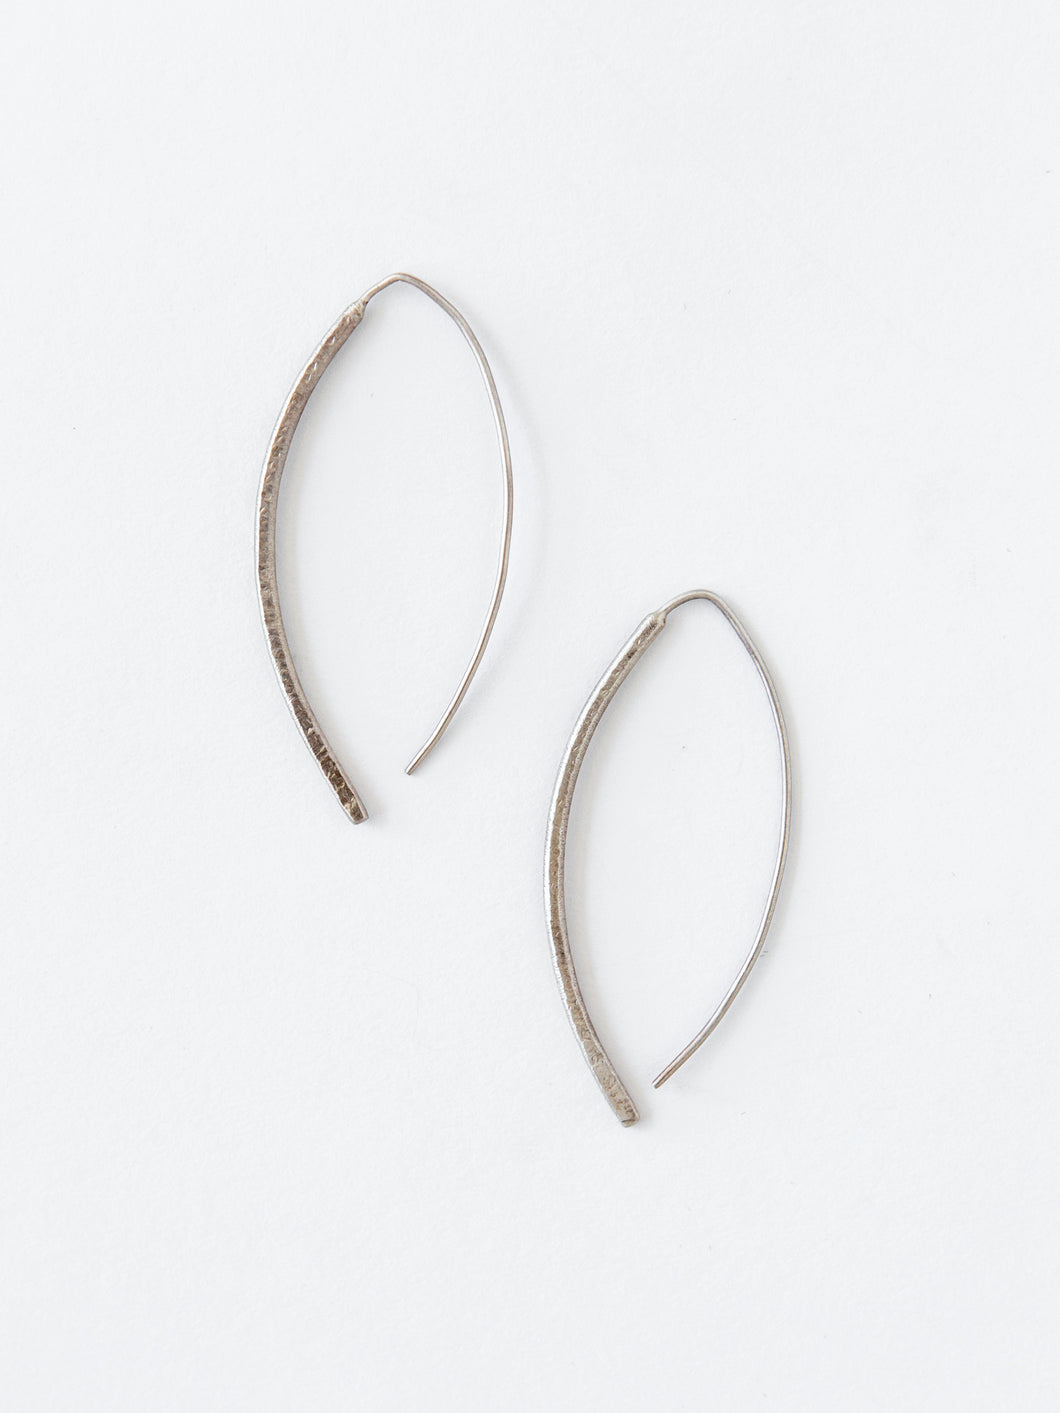 Fili Di Fieno Due Silver Earrings